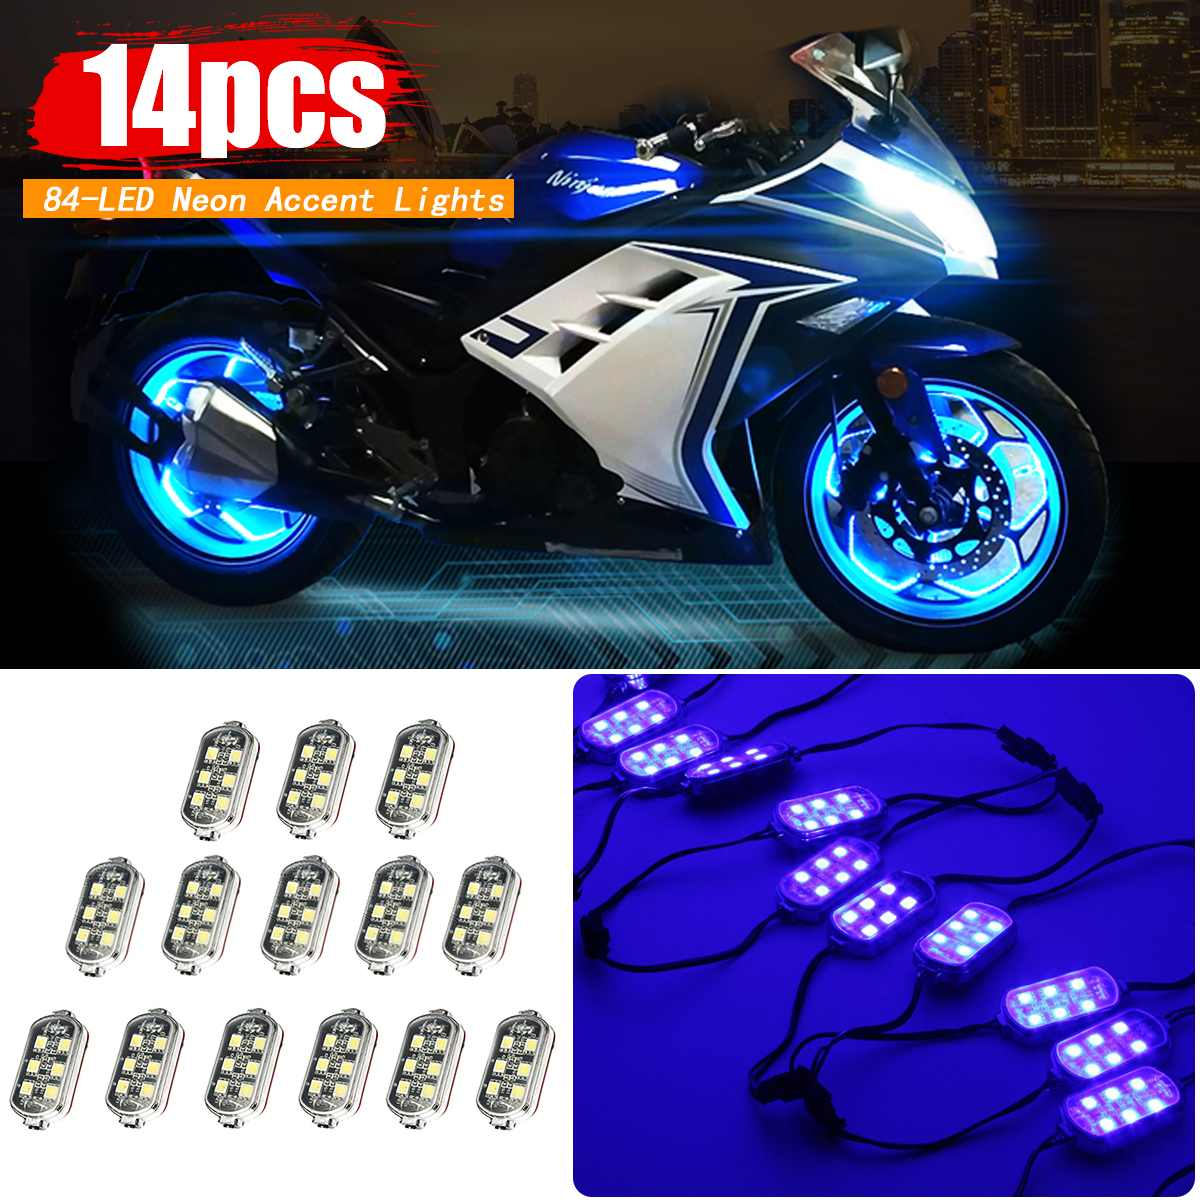 14 Pcs 12V Motorcycle Bike Wireless Control Remote 84-LED Neon Accent Lights Blue14 Pcs 12V Motorcycle Bike Wireless Control Remote 84-LED Neon Accent Lights Blue